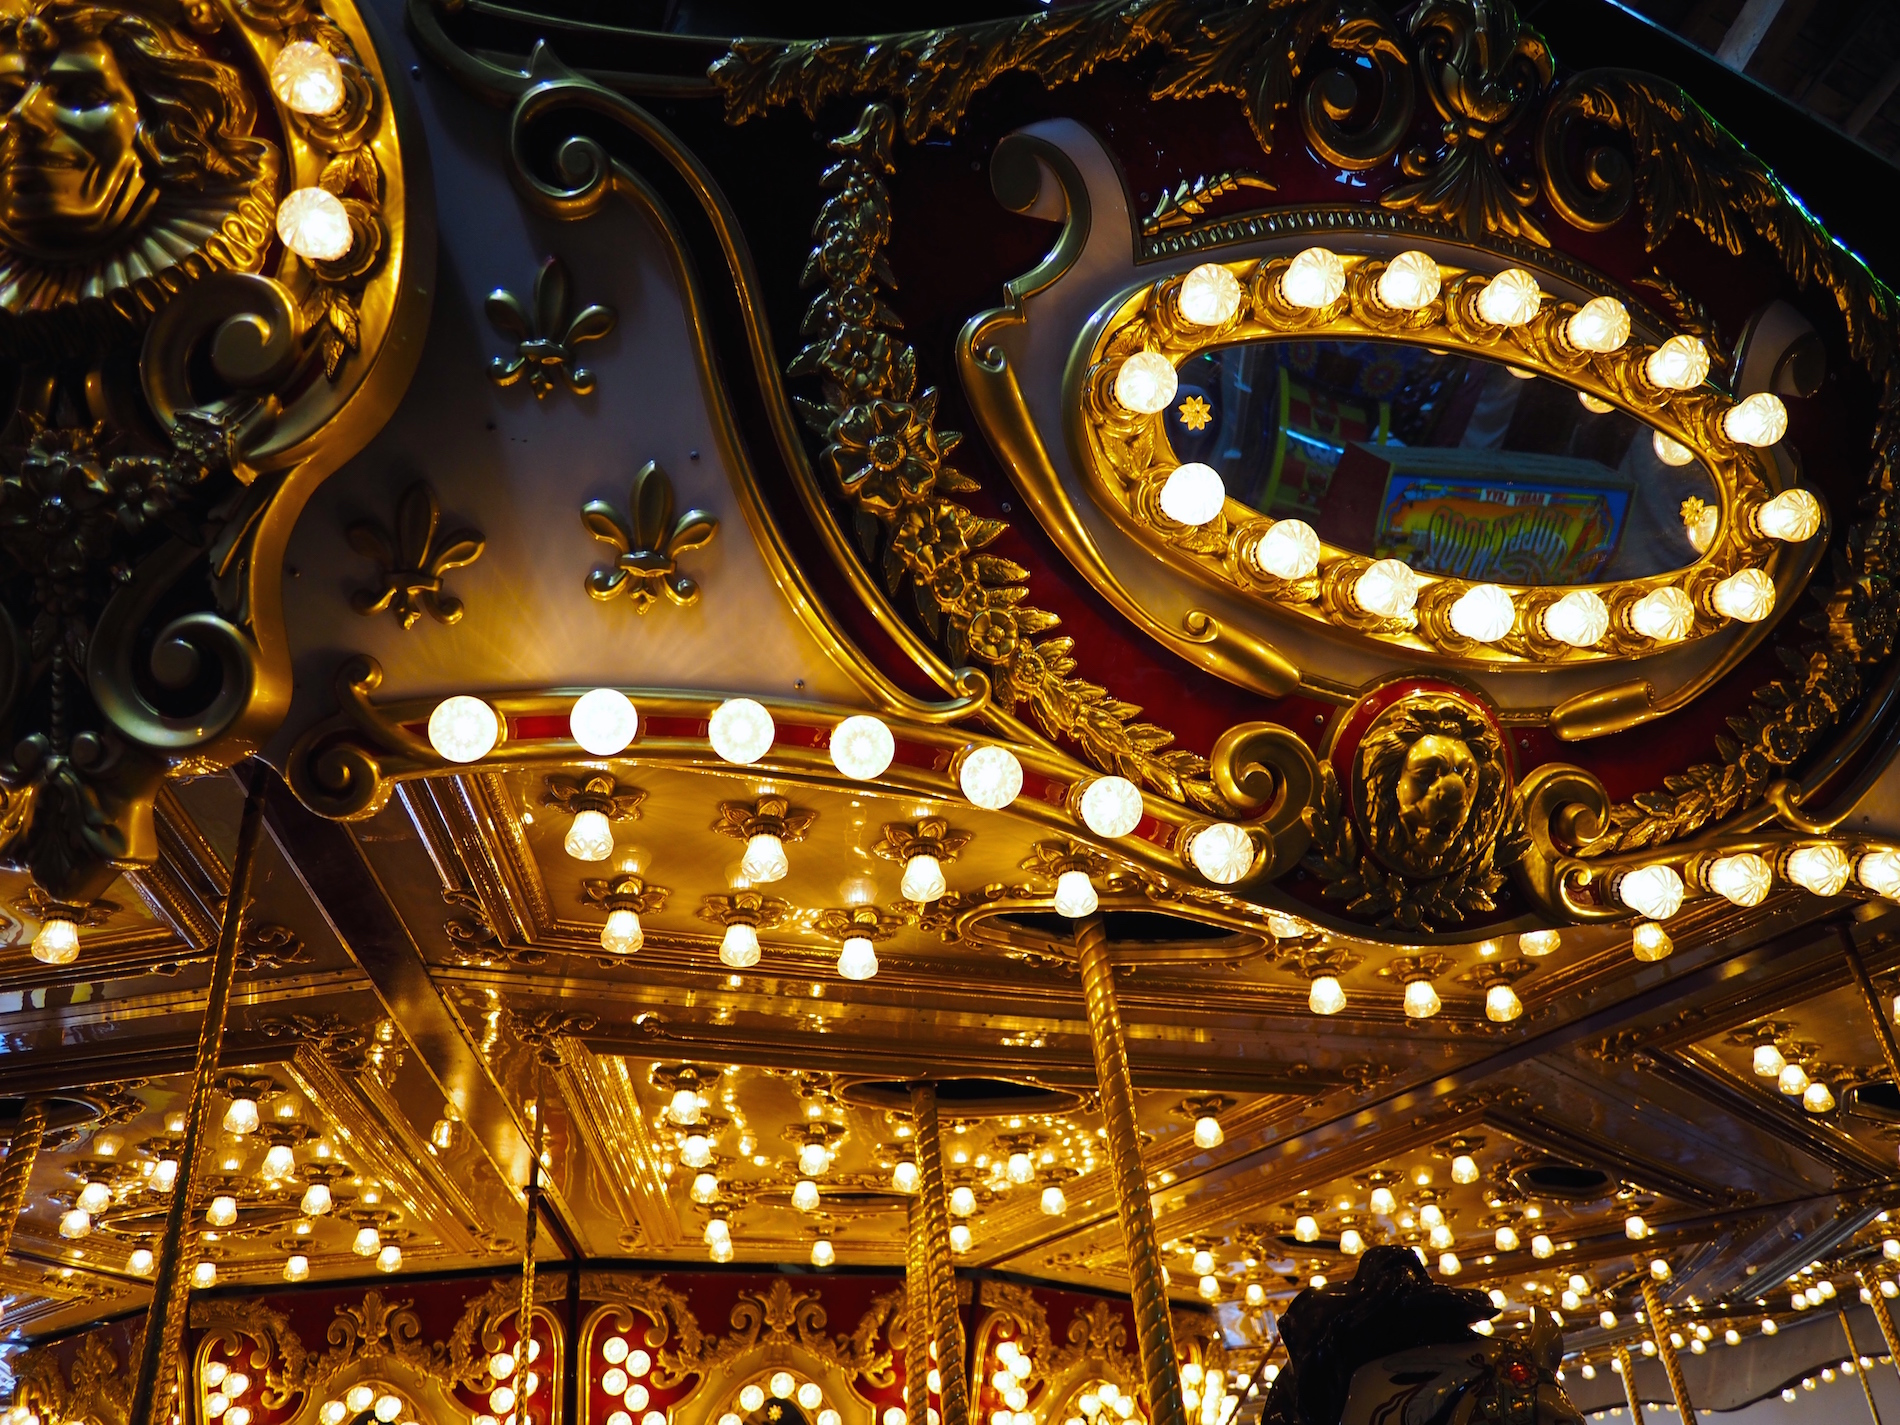 Merry-Go-Round at Rest, Seattle, Washington